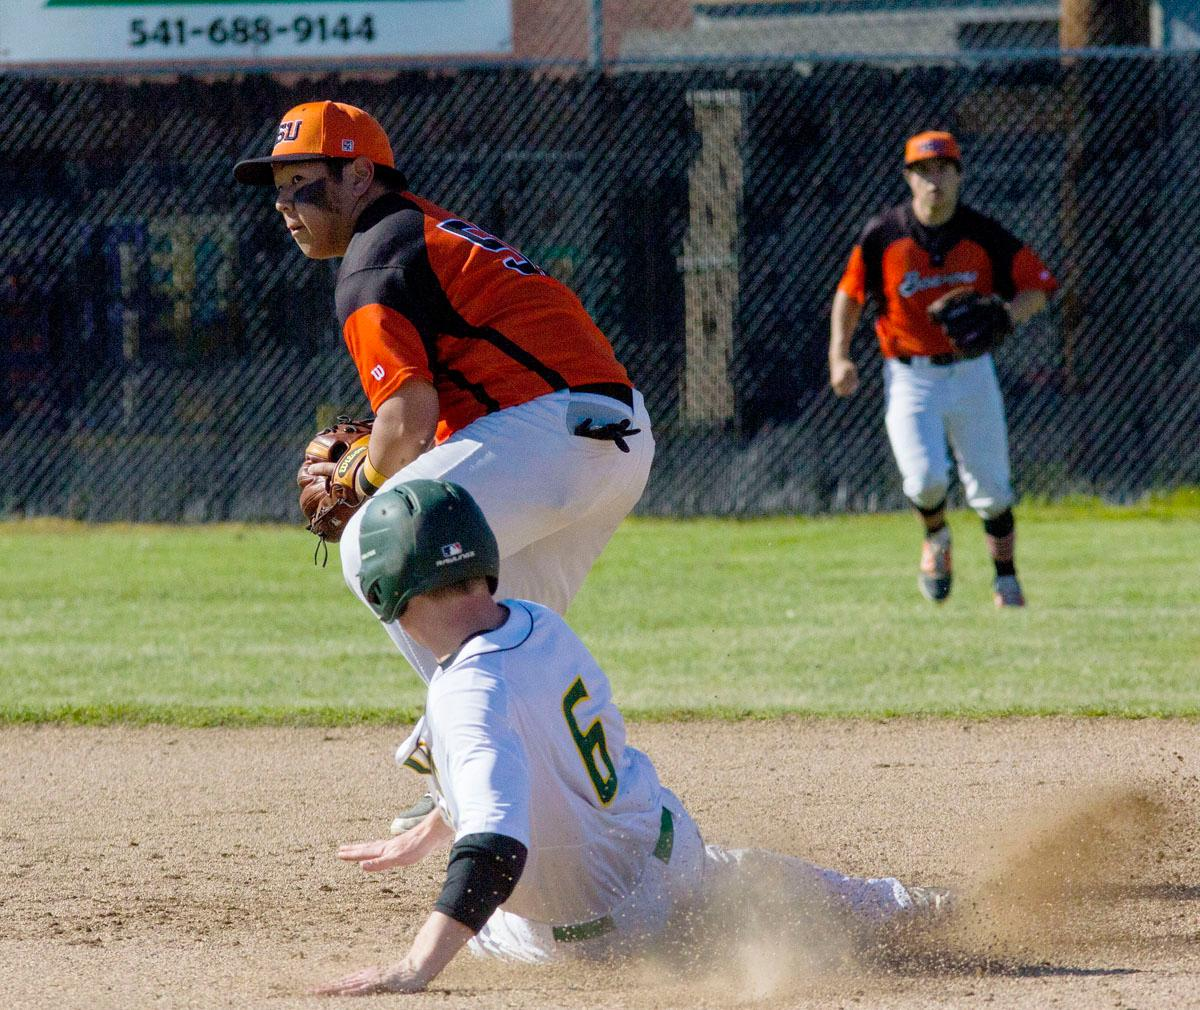 The Oregon State second baseman attempts to turn a double play after getting Oregon Ducks Austin Smith out. The Oregon Ducks won the Civil War series this weekend against the Oregon State Beavers. The Ducks won the first game 13-3, but lost the second game 12-0, then rebounding to win the third and deciding game 4-3. The Ducks Club baseball team finished the season with a league record of 14-1, taking first place. They now move on to the Regionals in Boise, Idaho, in two weeks. The Club team won the National Championship in 2015 and came in third nationally in 2016. Photo by Aaron Alter, Oregon News Lab